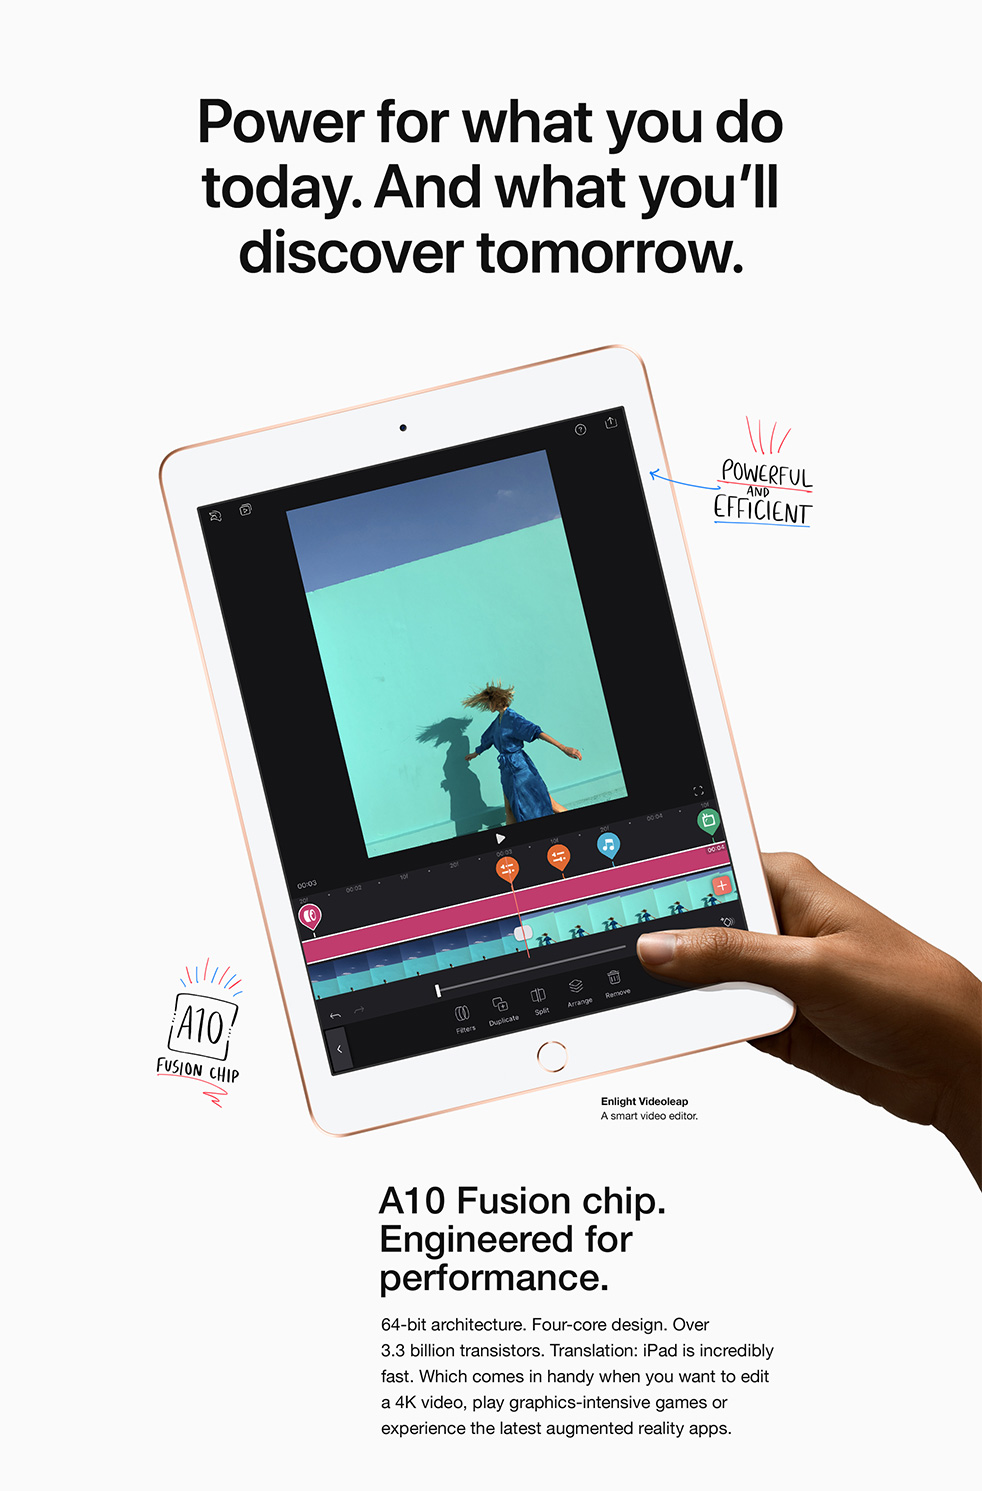 iPad - Power for what you do today. And what you'll discover tomorrow.